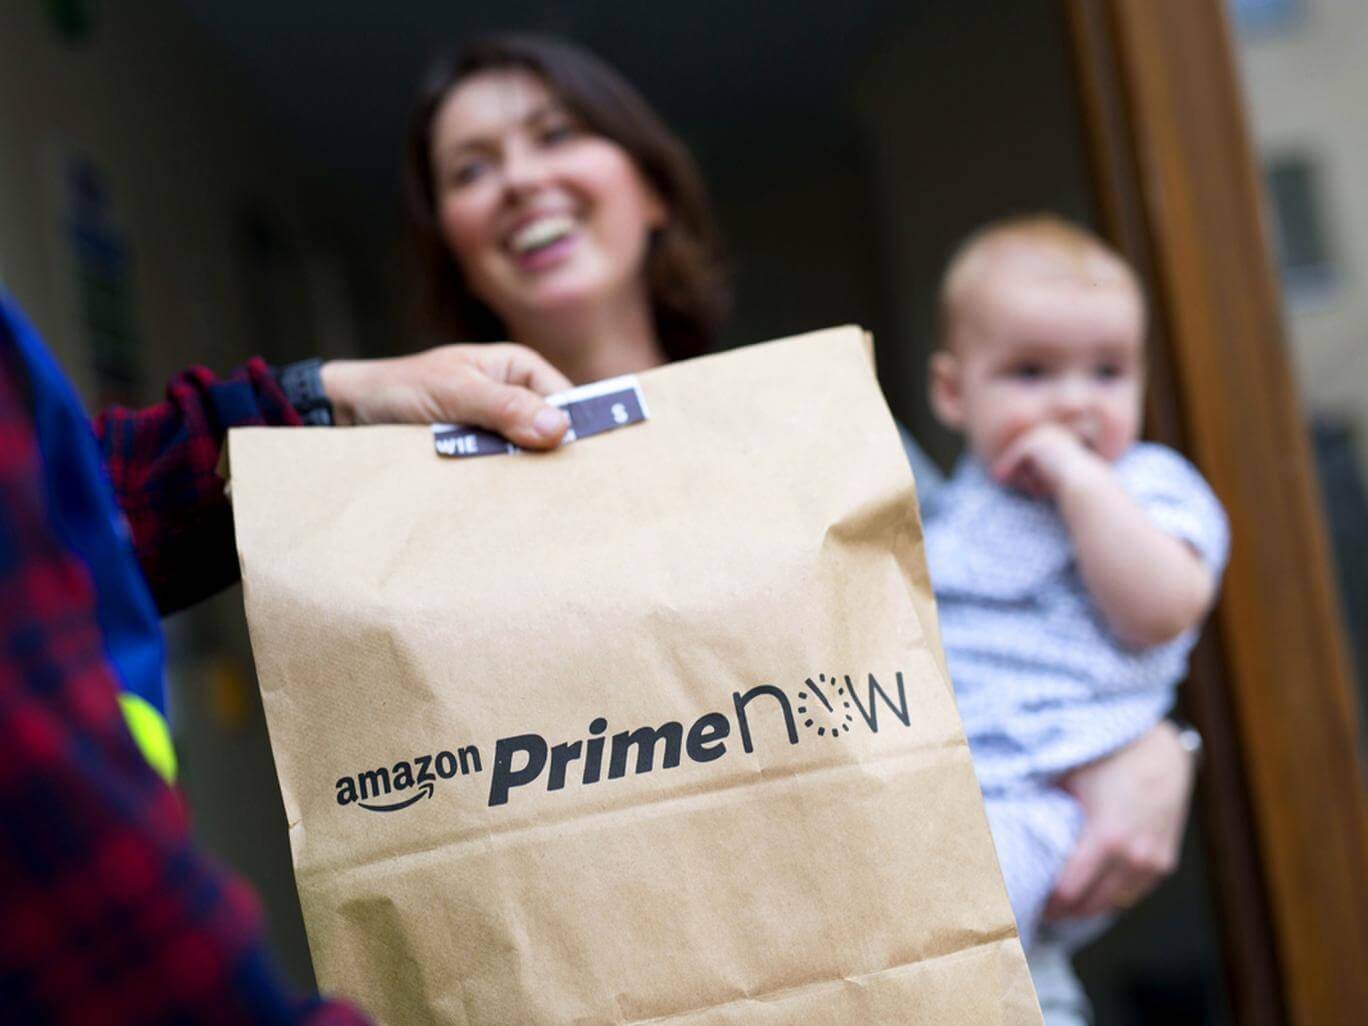 Amazon Prime delivery improves their branding through customer experience.